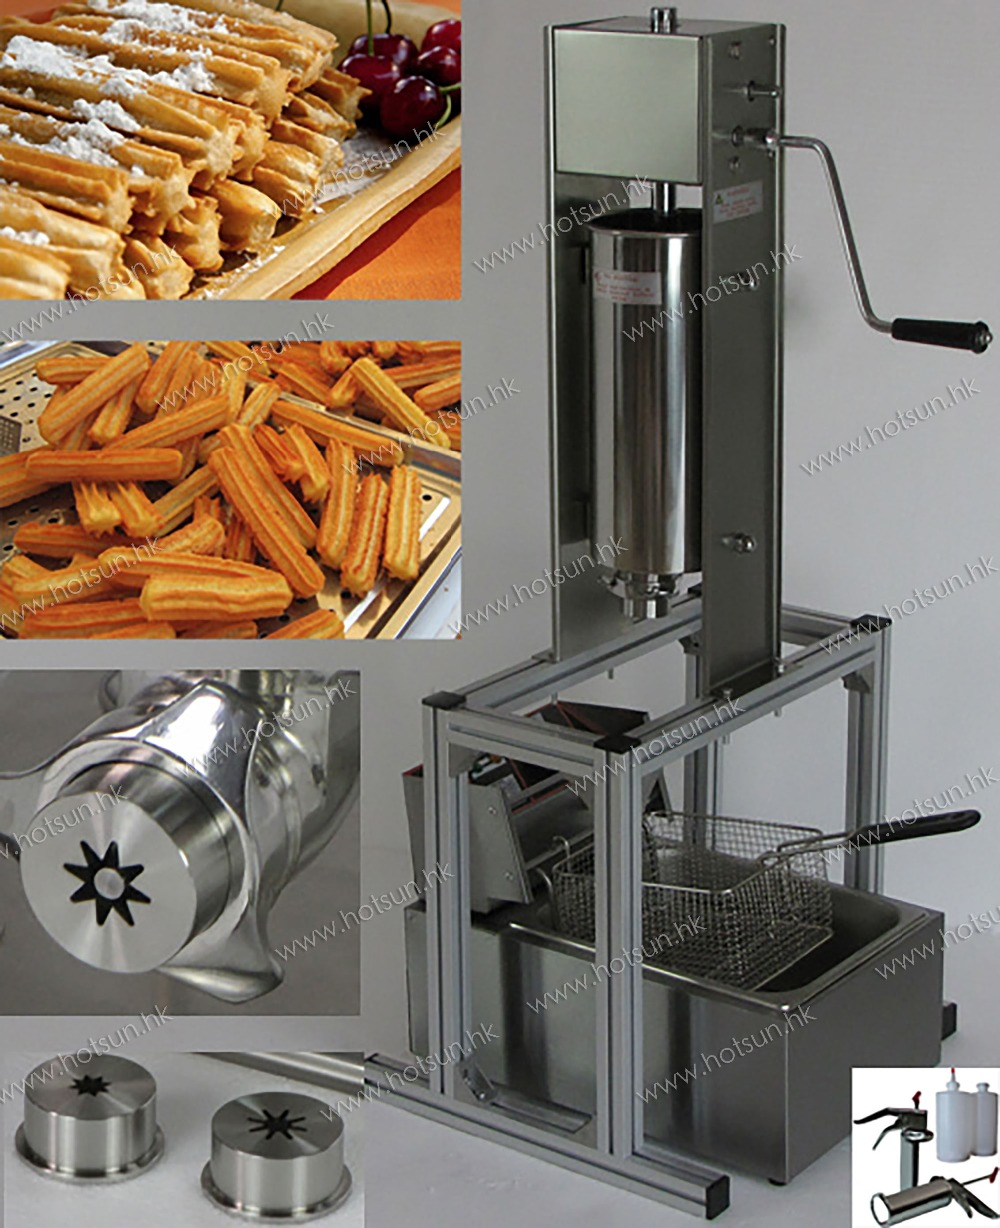 3 in 1 5L Manual Spainish Churros Machine Maker with Support + 6L 110v 220v Electric Deep Fryer + 700ml Churro Jam Filler 5l stainless steel spanish churro maker fried dough sticks machine with 6l electric fryer commercial churros machine